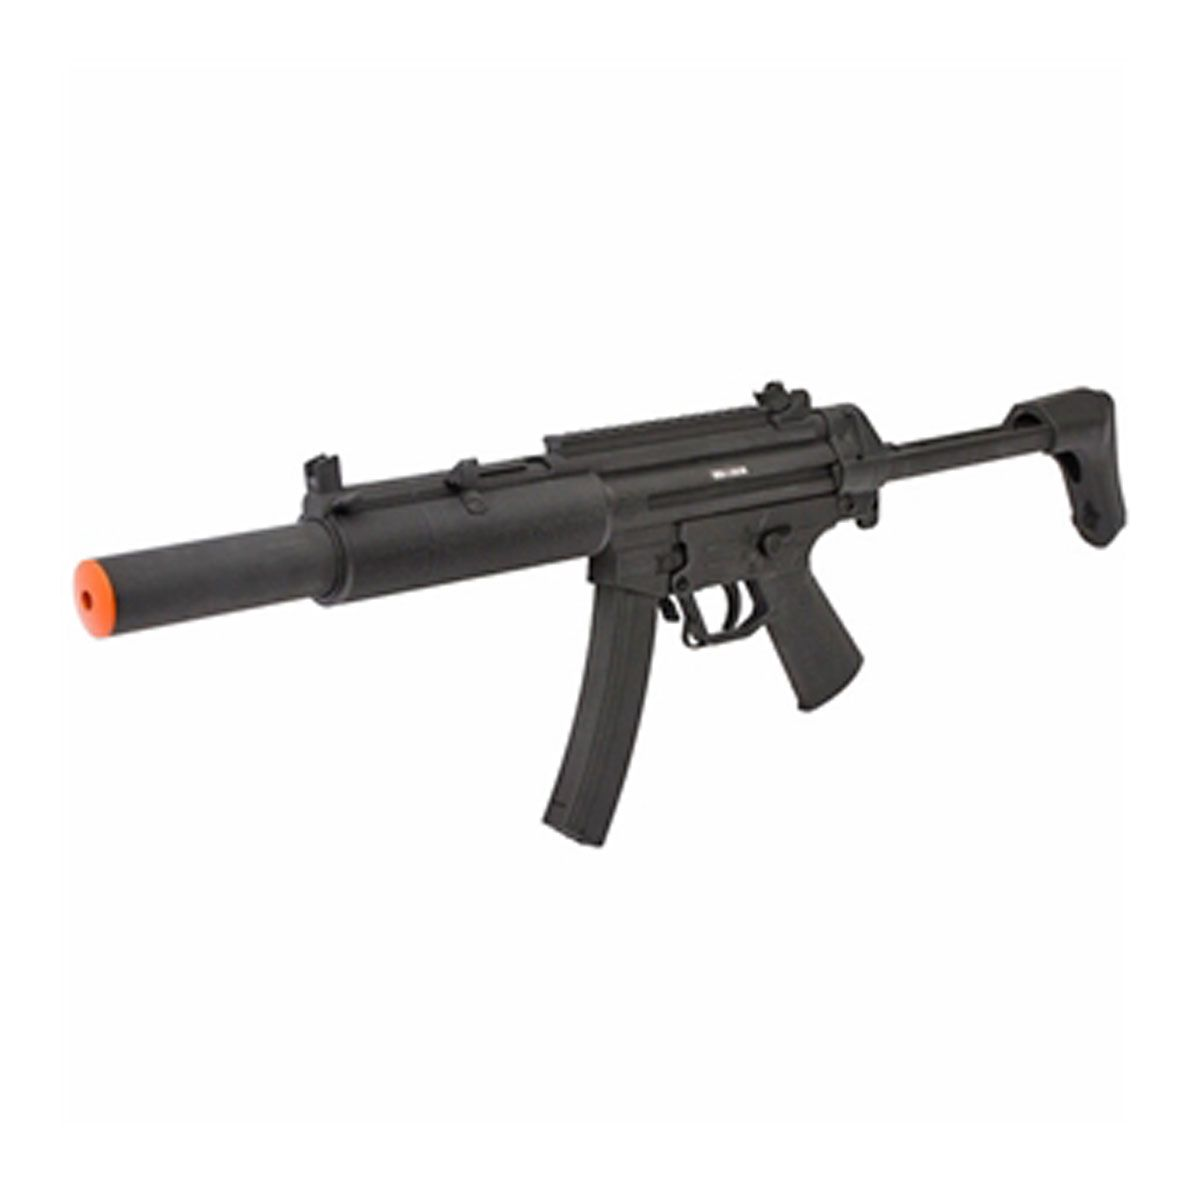 Rifle Airsoft Cybergun 522 RIS Full Metal Elétrico 6mm